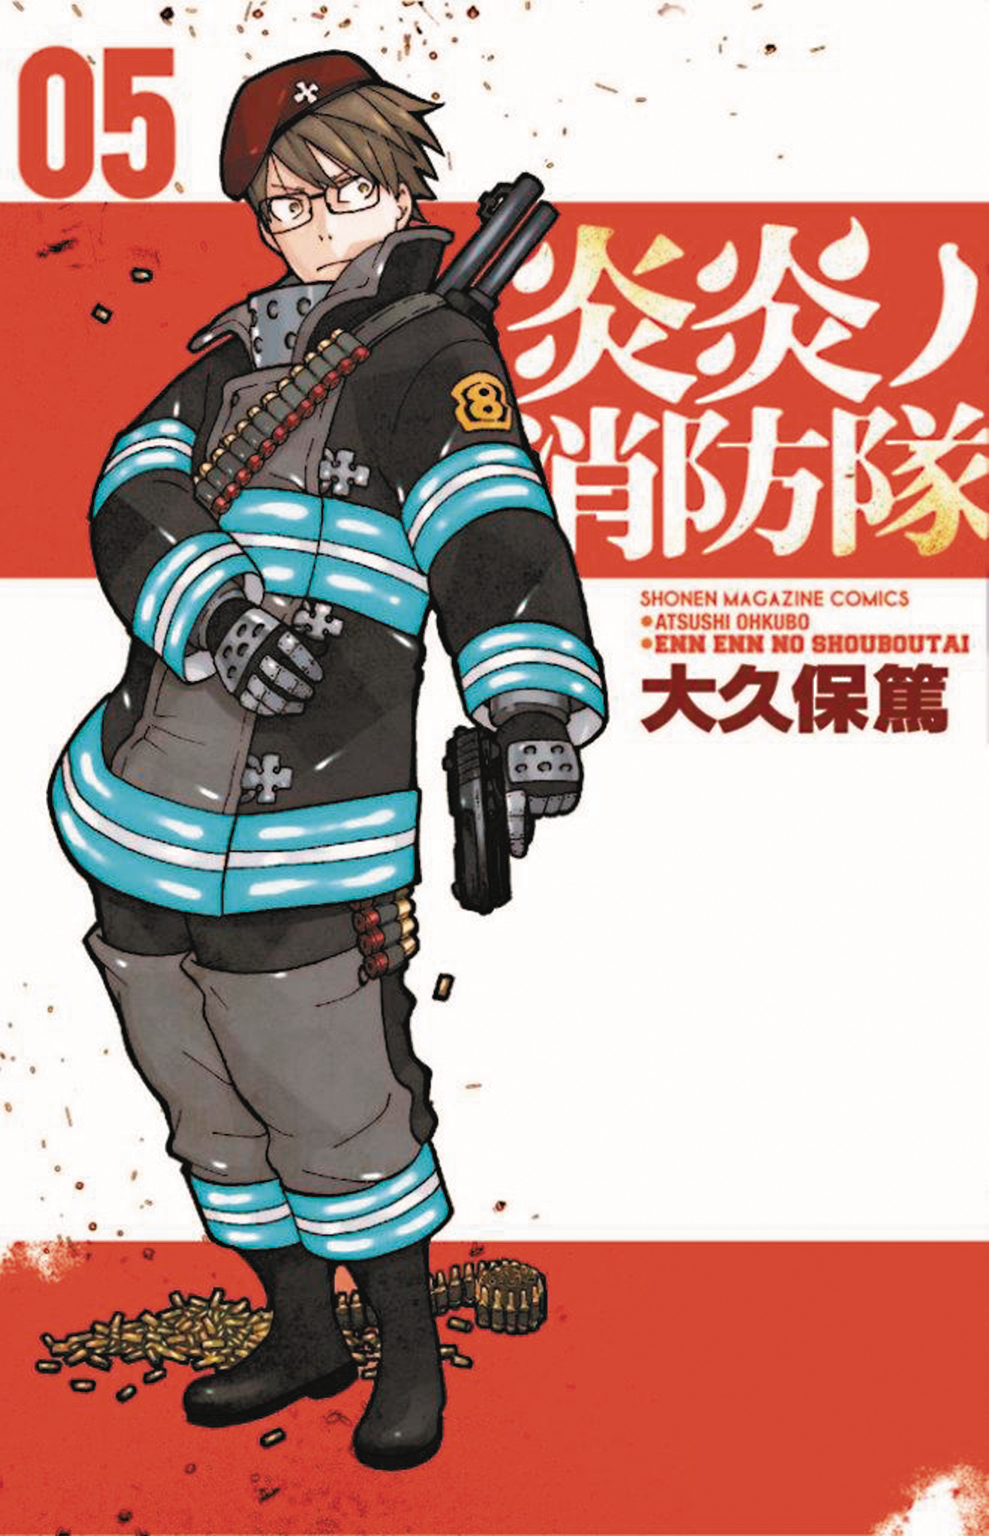 FIRE FORCE GN VOL 05